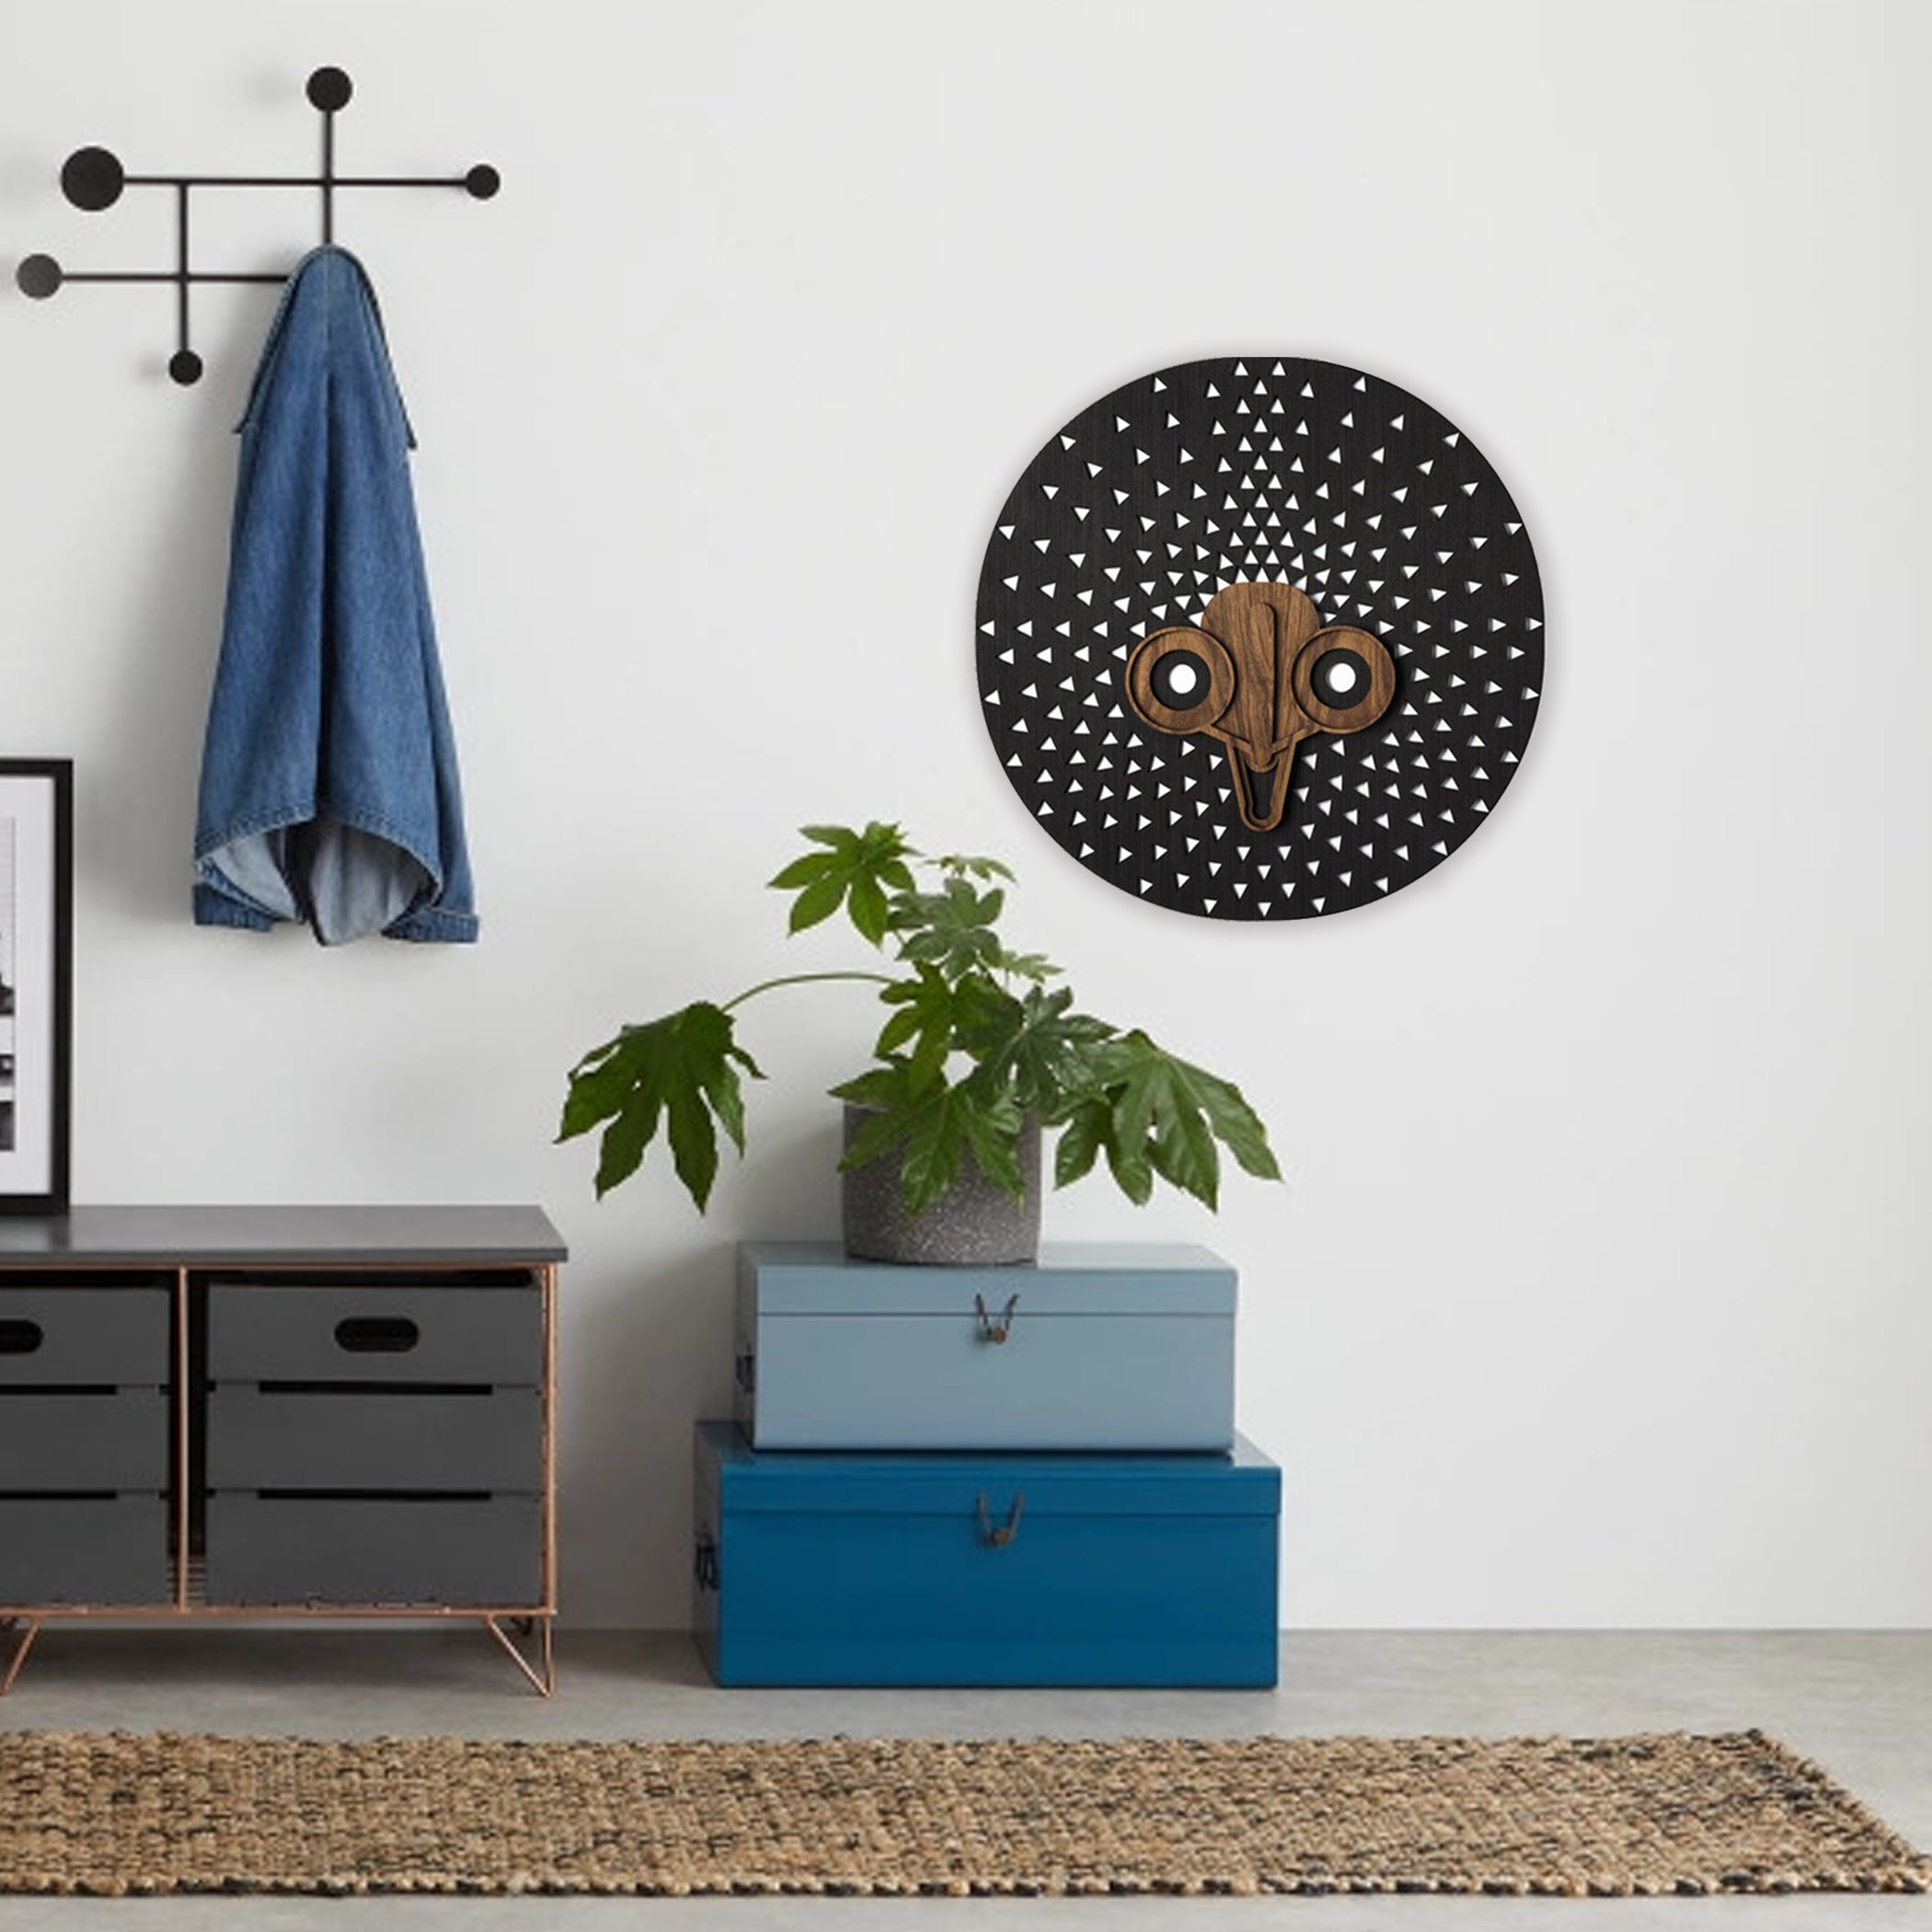 Wall Decor with Black Wall Hanging